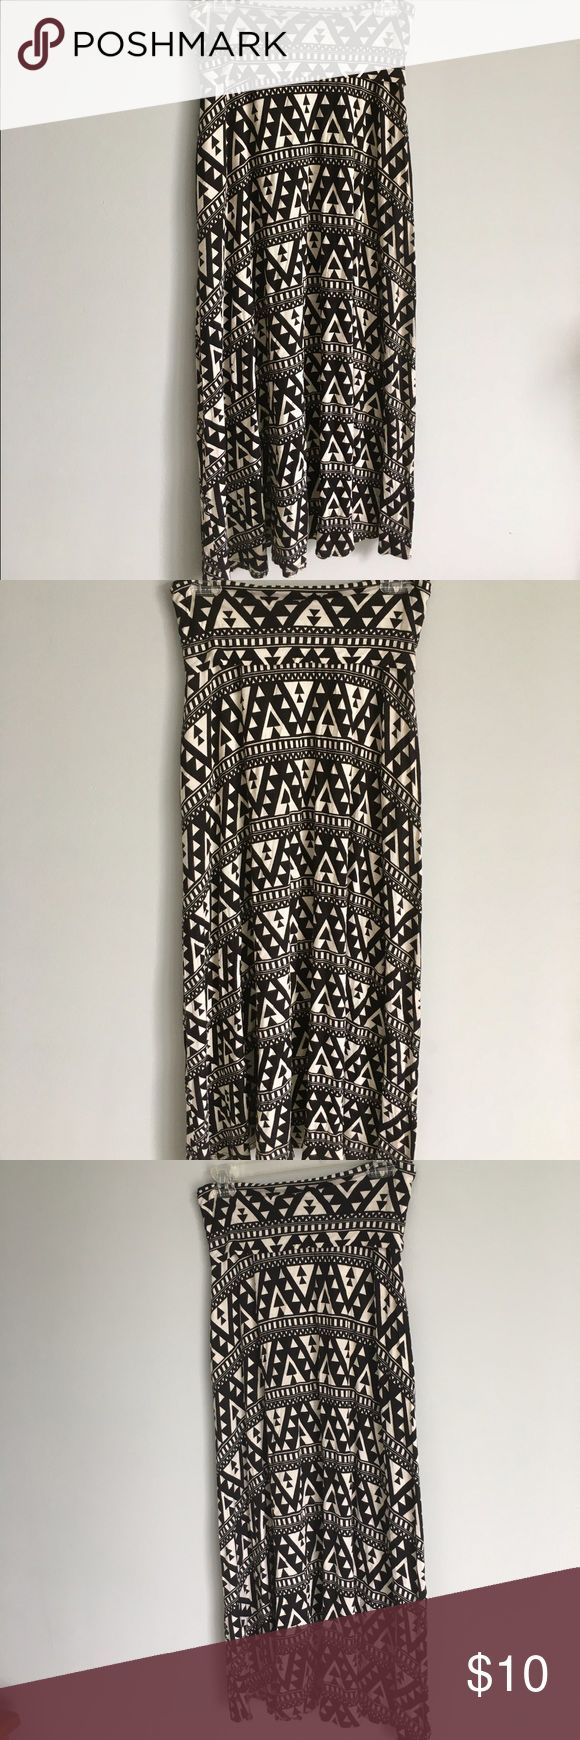 PRICE ⬇️Boutique Black and White Tribal Maxi Skirt Gently worn black and white Tribal Print Maxi Skirt. Super cute and comfortable! Entourage Skirts Maxi